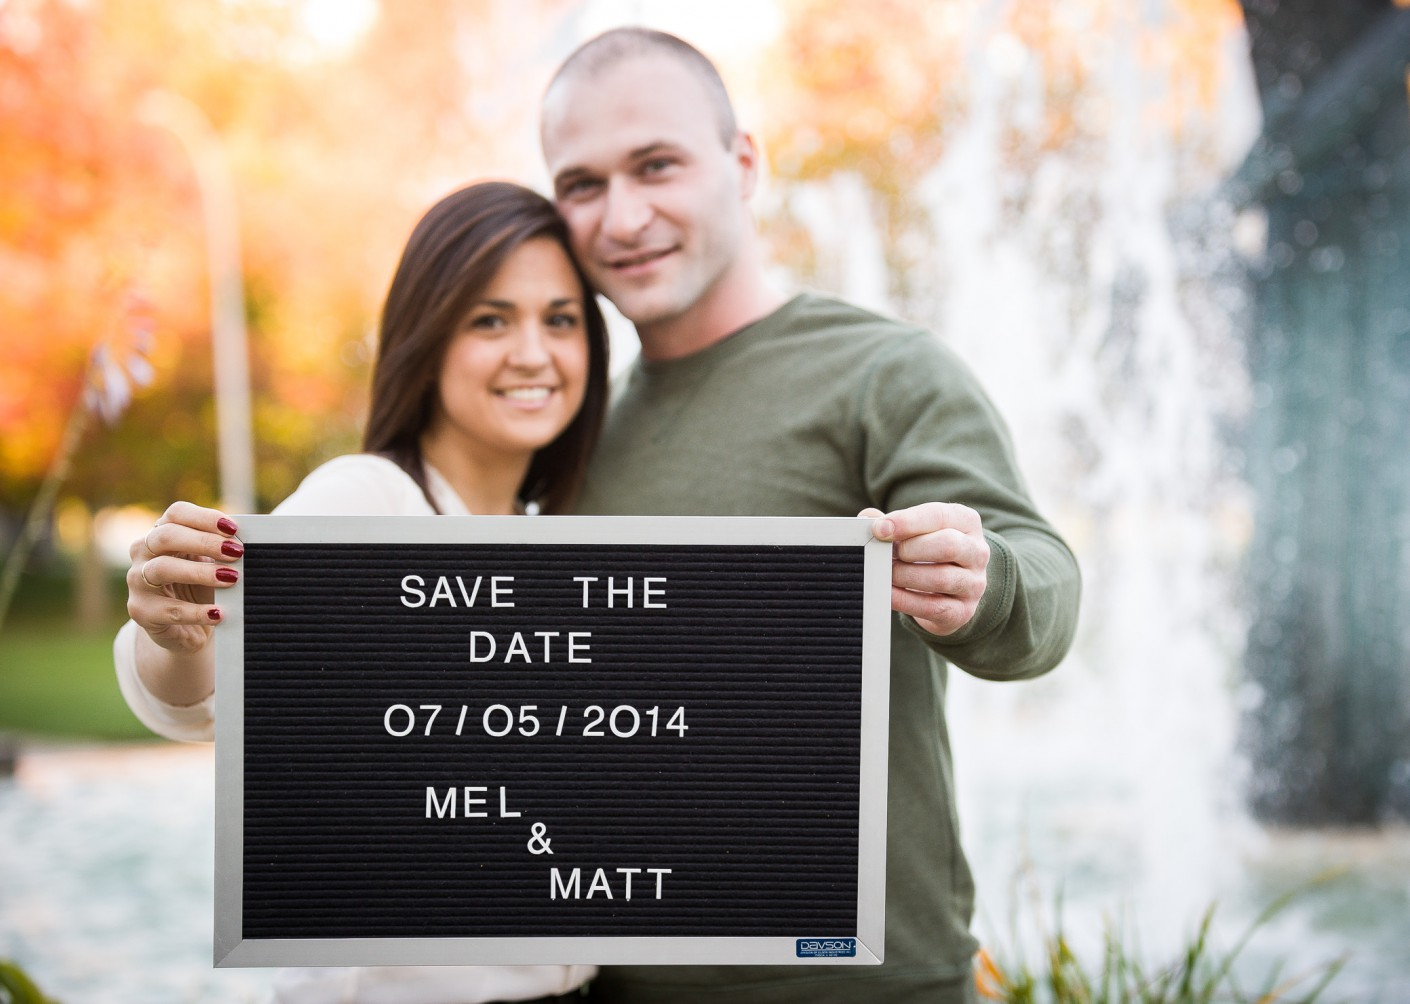 Fiancailles : Save the date -, KW:  Couple, Engagement, Mariage